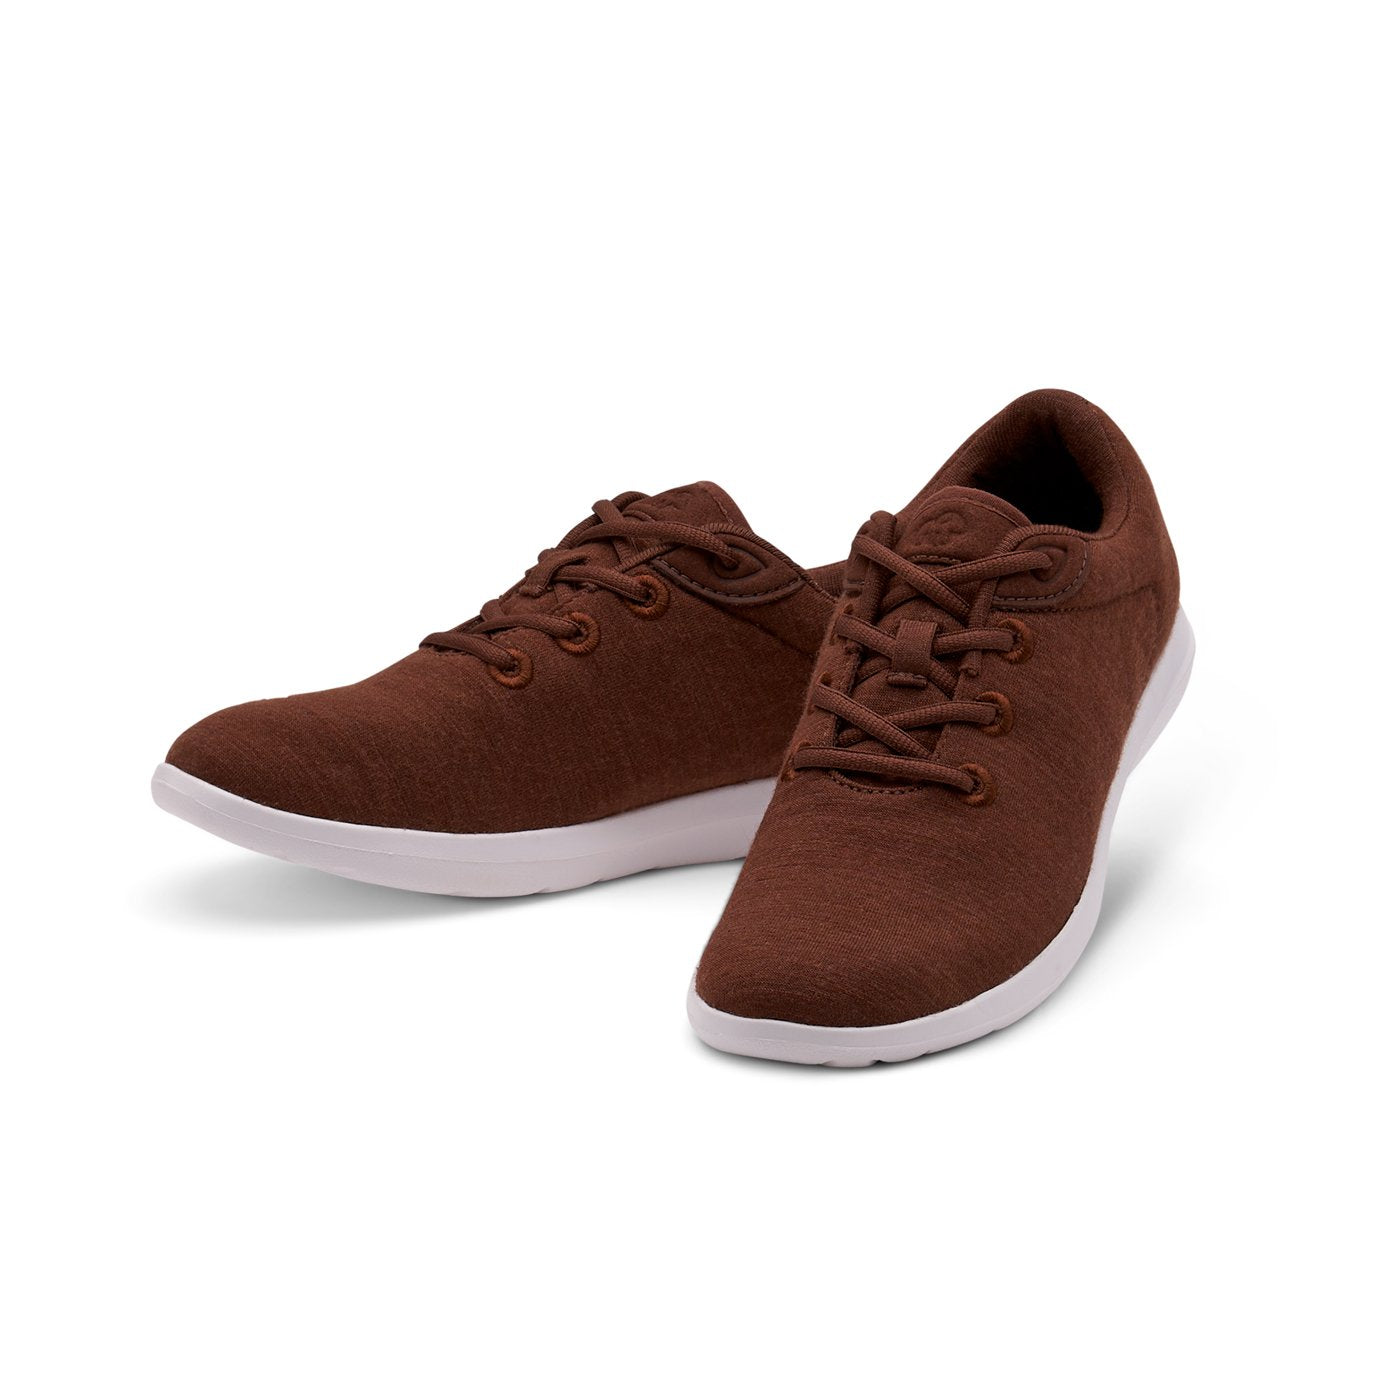 Women's Lace-Ups Brown